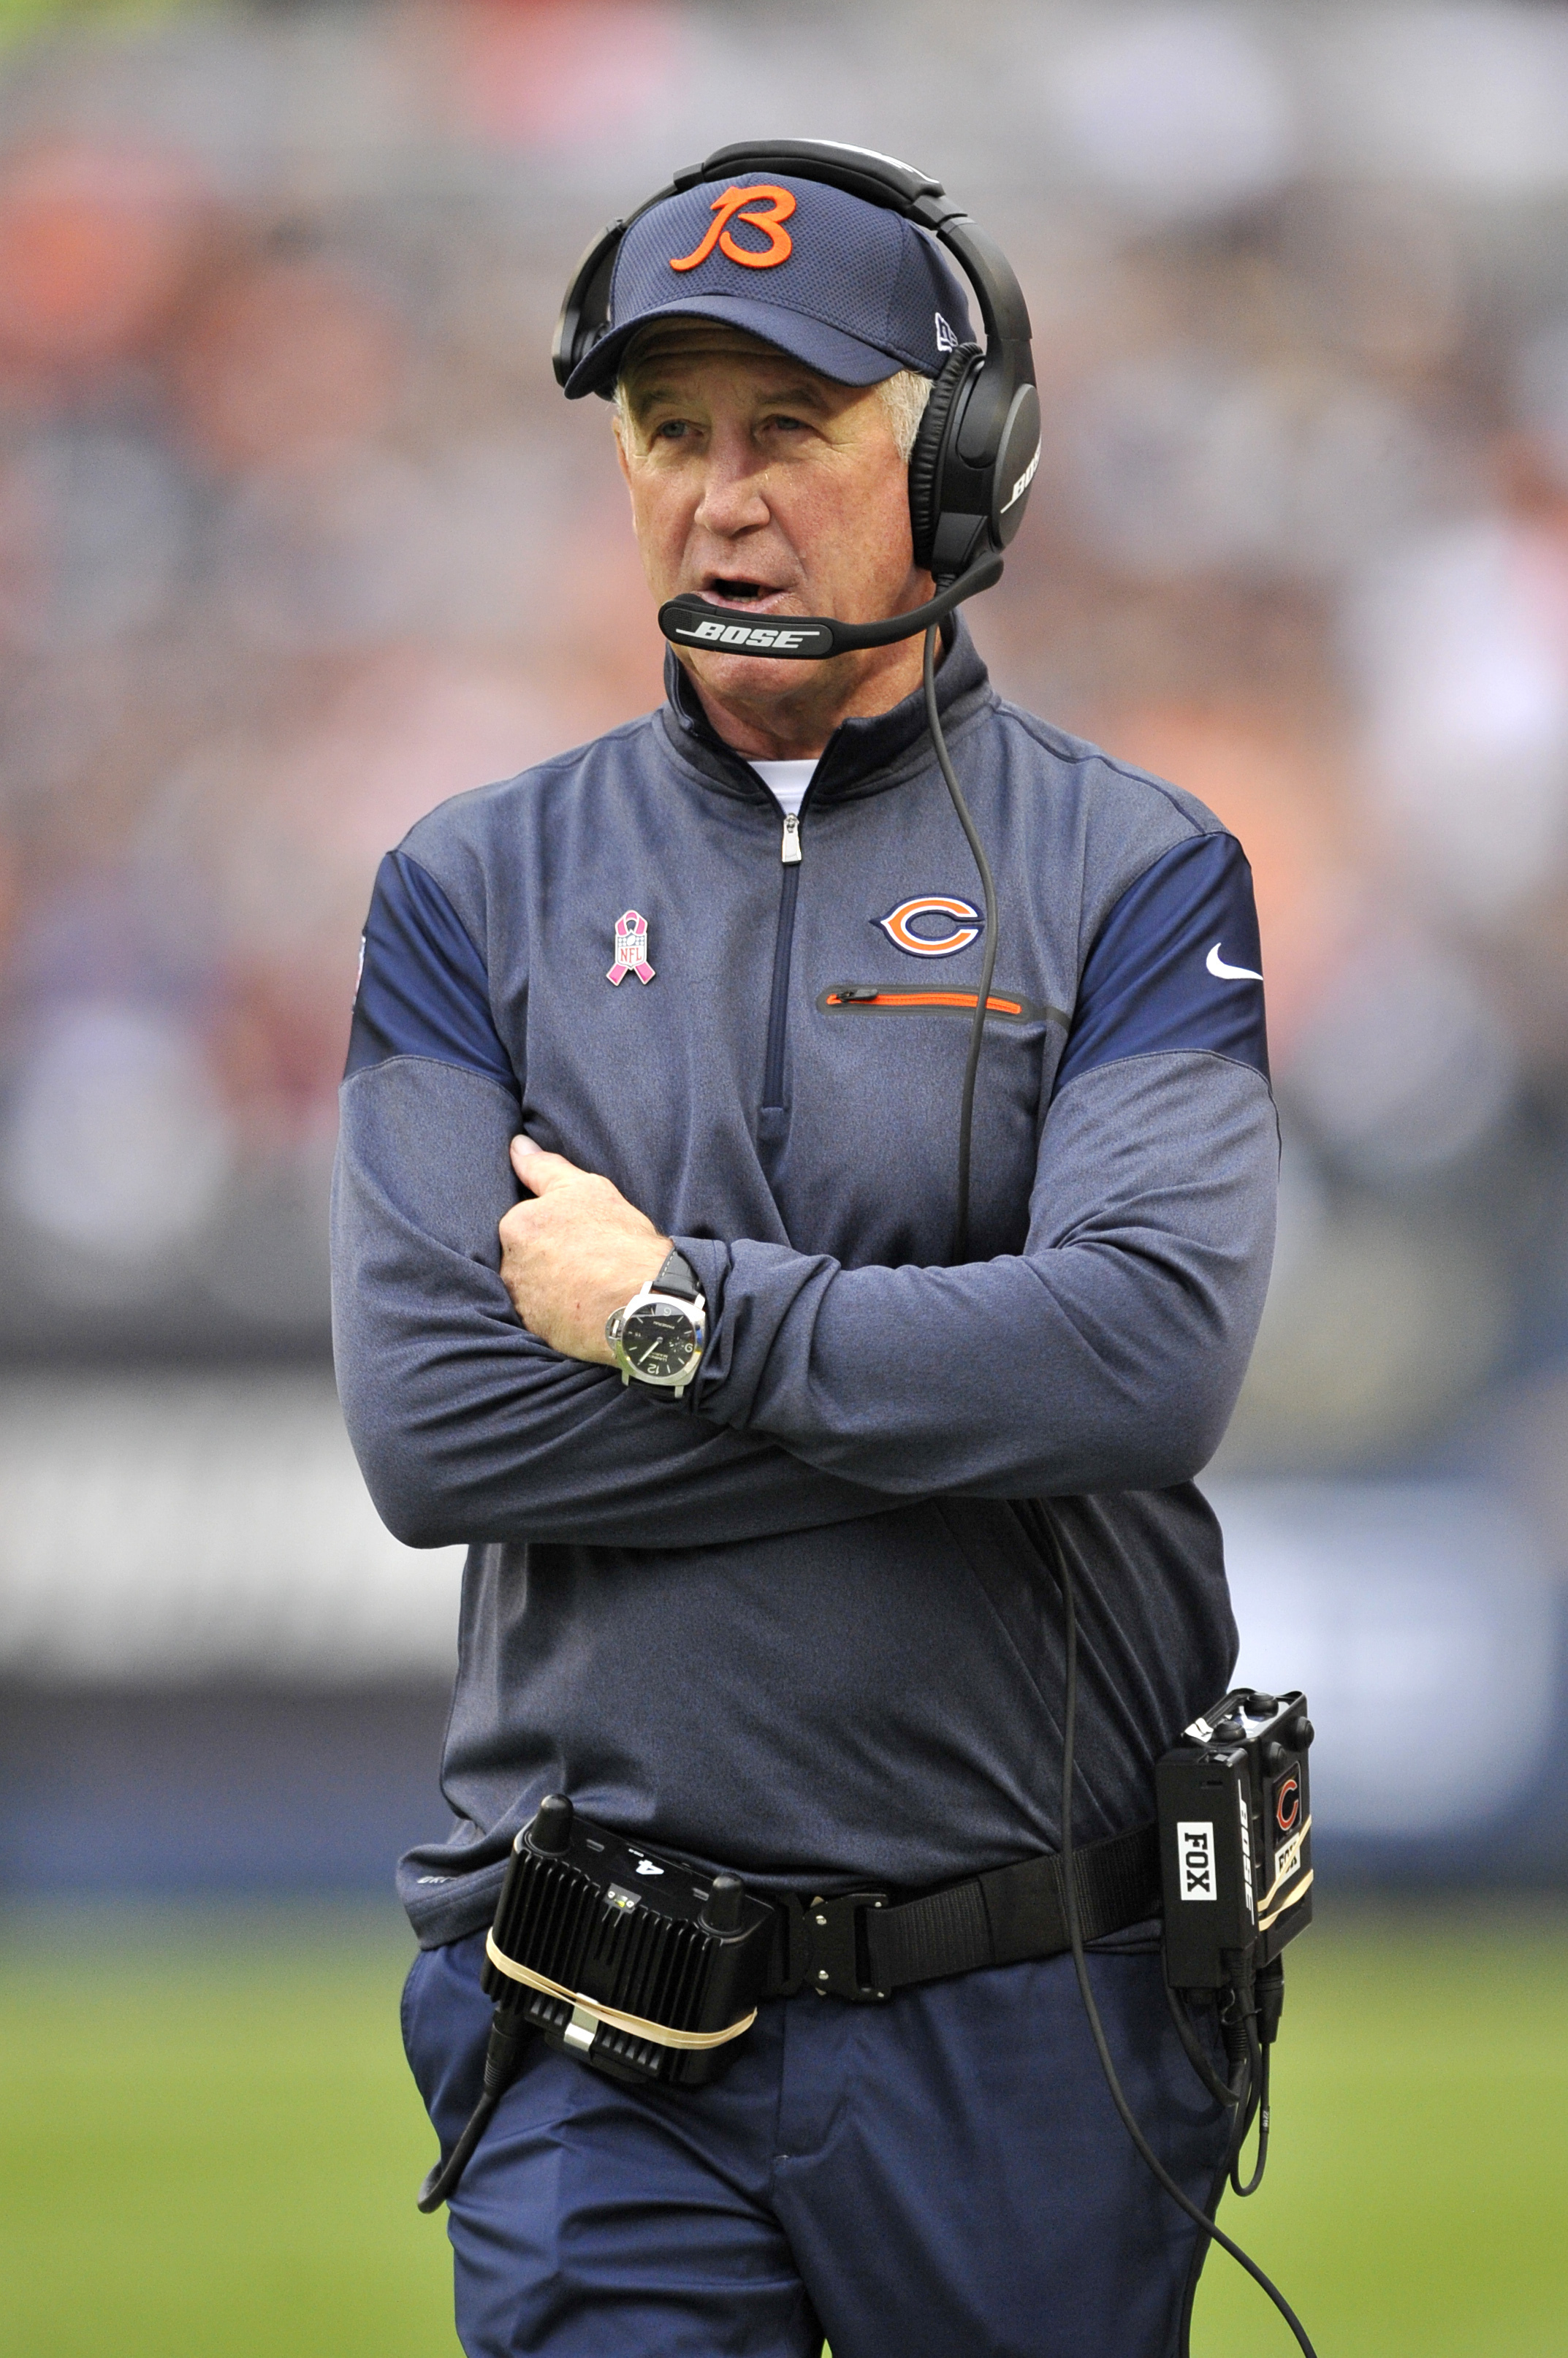 Chicago Bears head coach John Fox stands on the sideline during the first half of an NFL football game against the Jacksonville Jaguars in Chicago, Sunday, Oct. 16, 2015. (AP Photo/Paul Beaty)